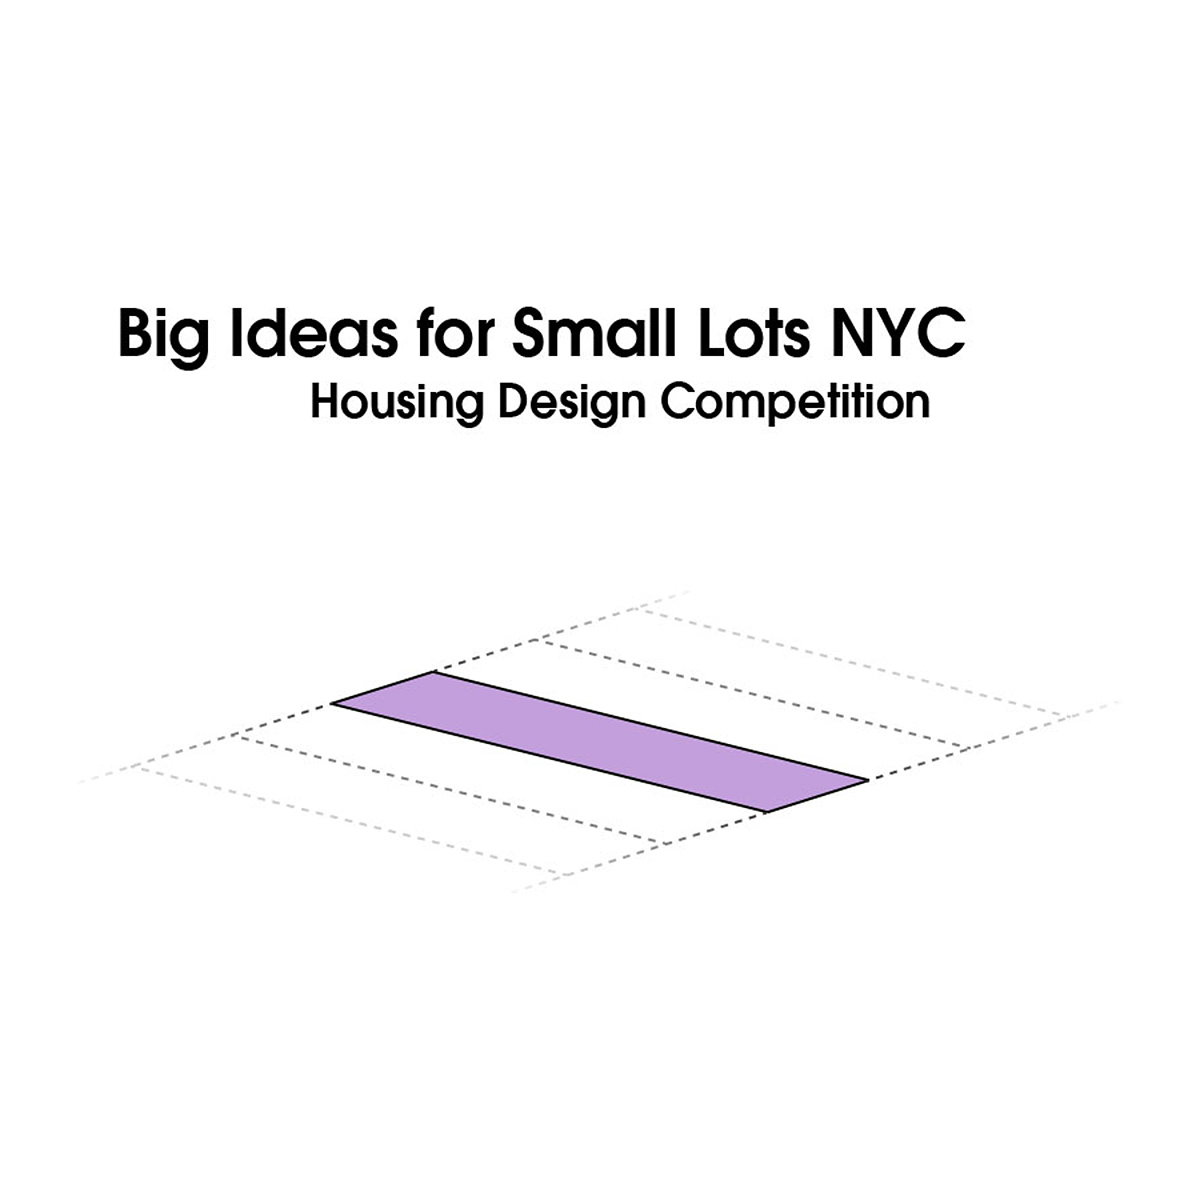 Big Ideas for Small Lots NYC - Housing Design Competition